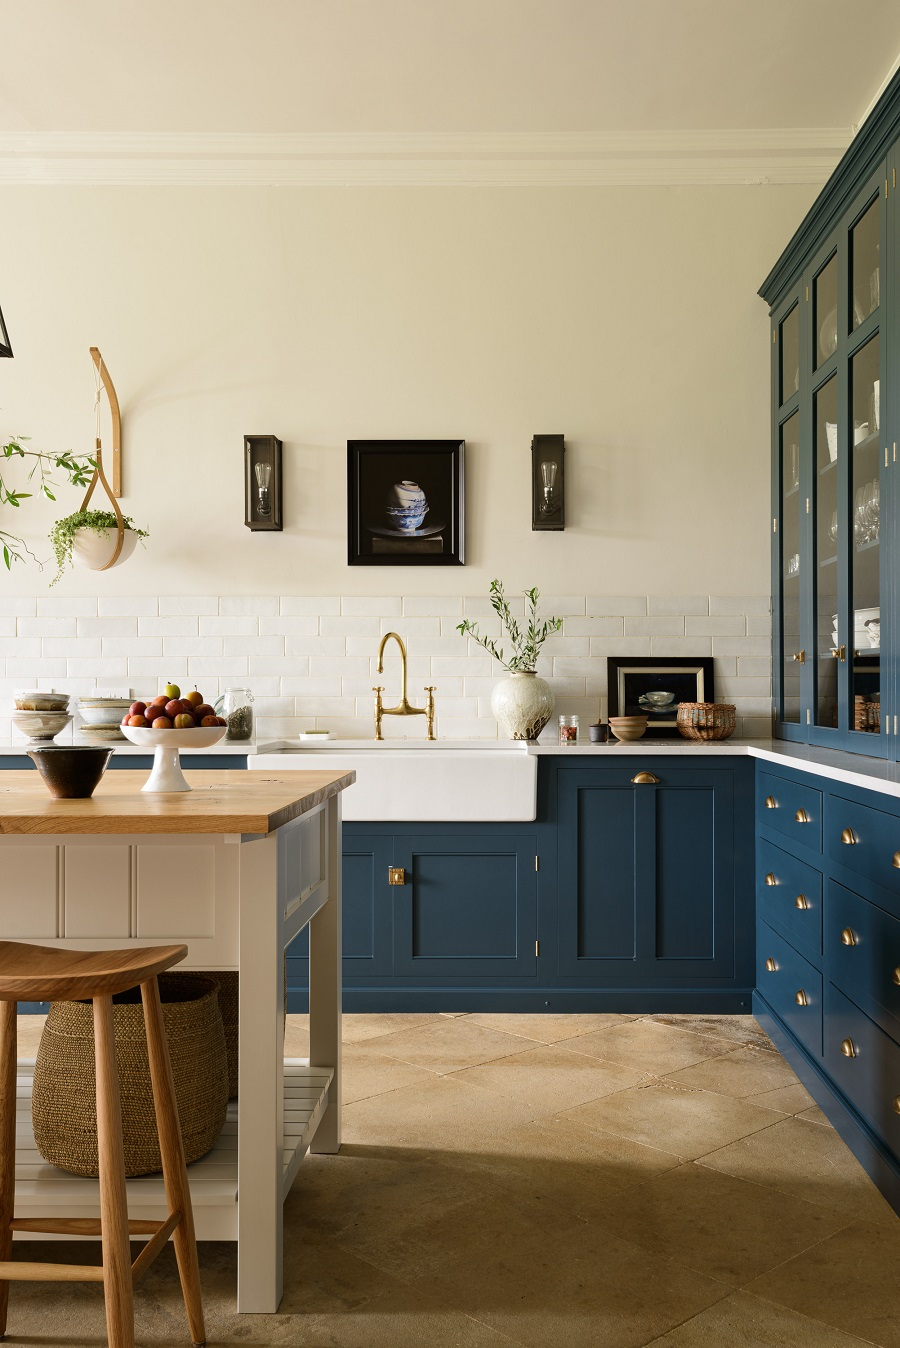 How to Add Personality to a Brand New Kitchen